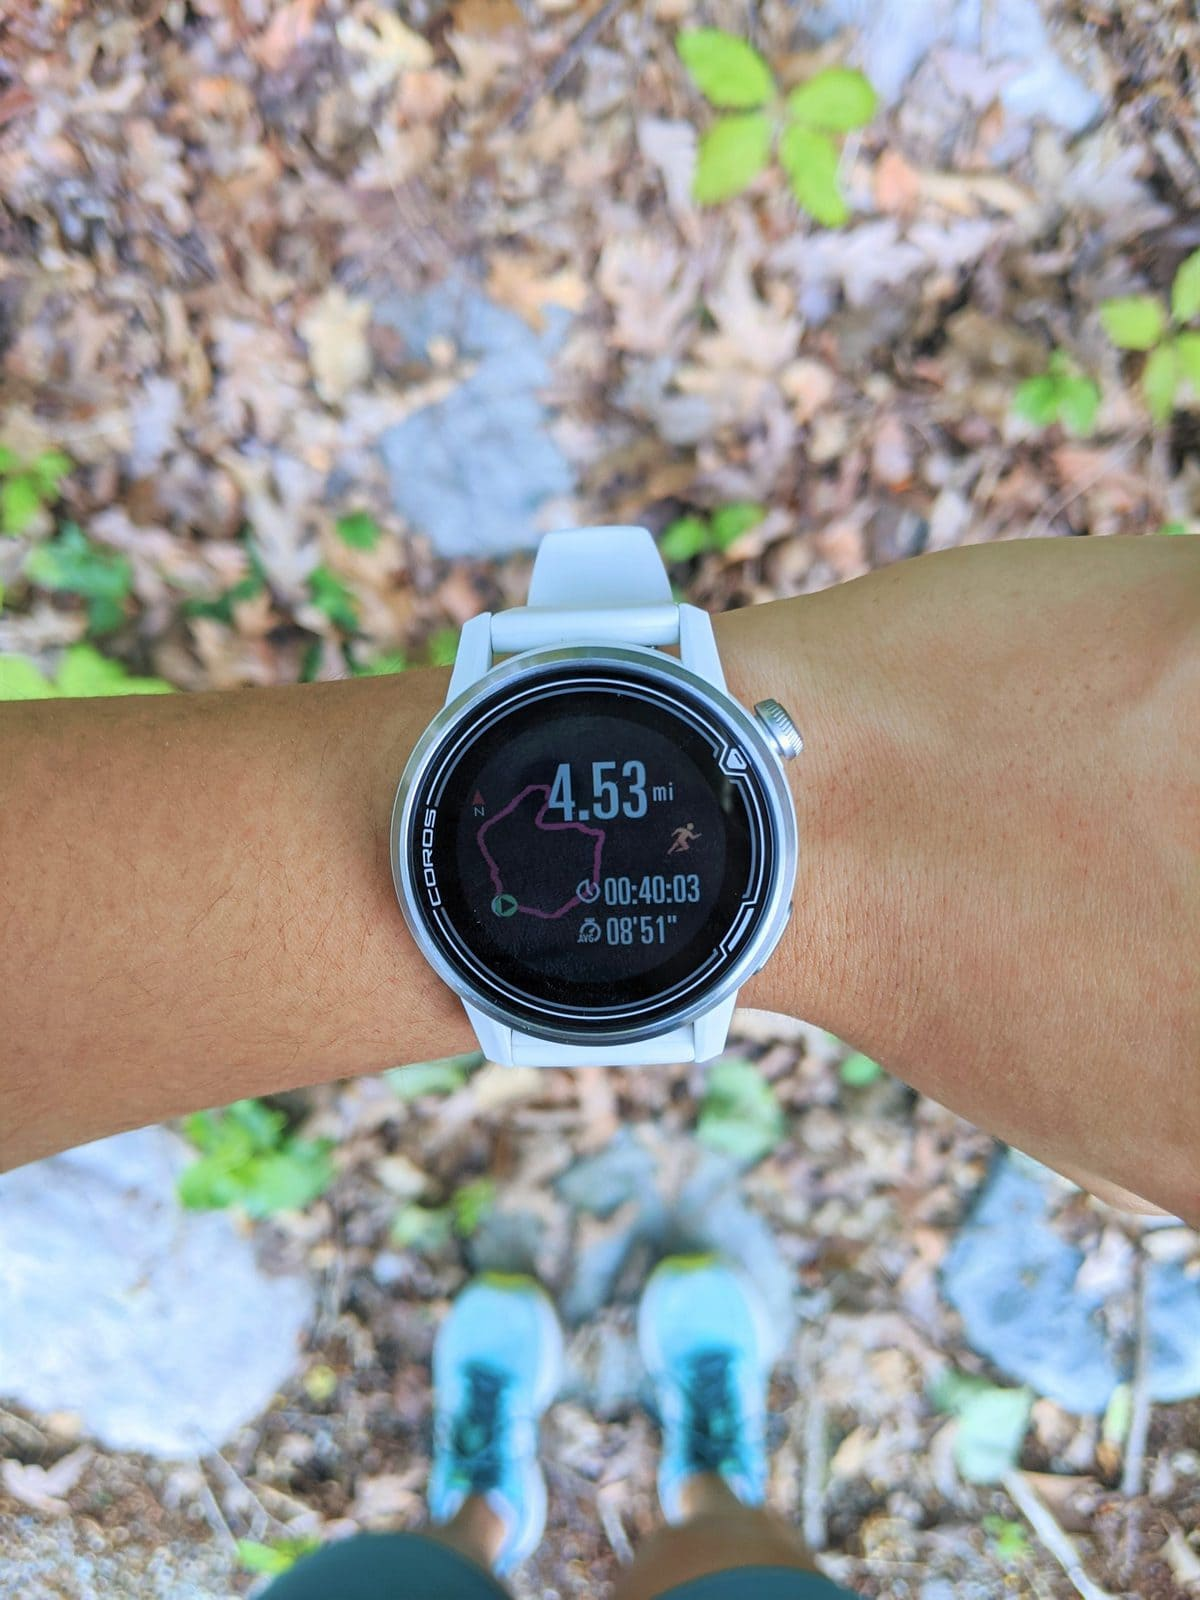 COROS APEX on wrist, watch face after a run